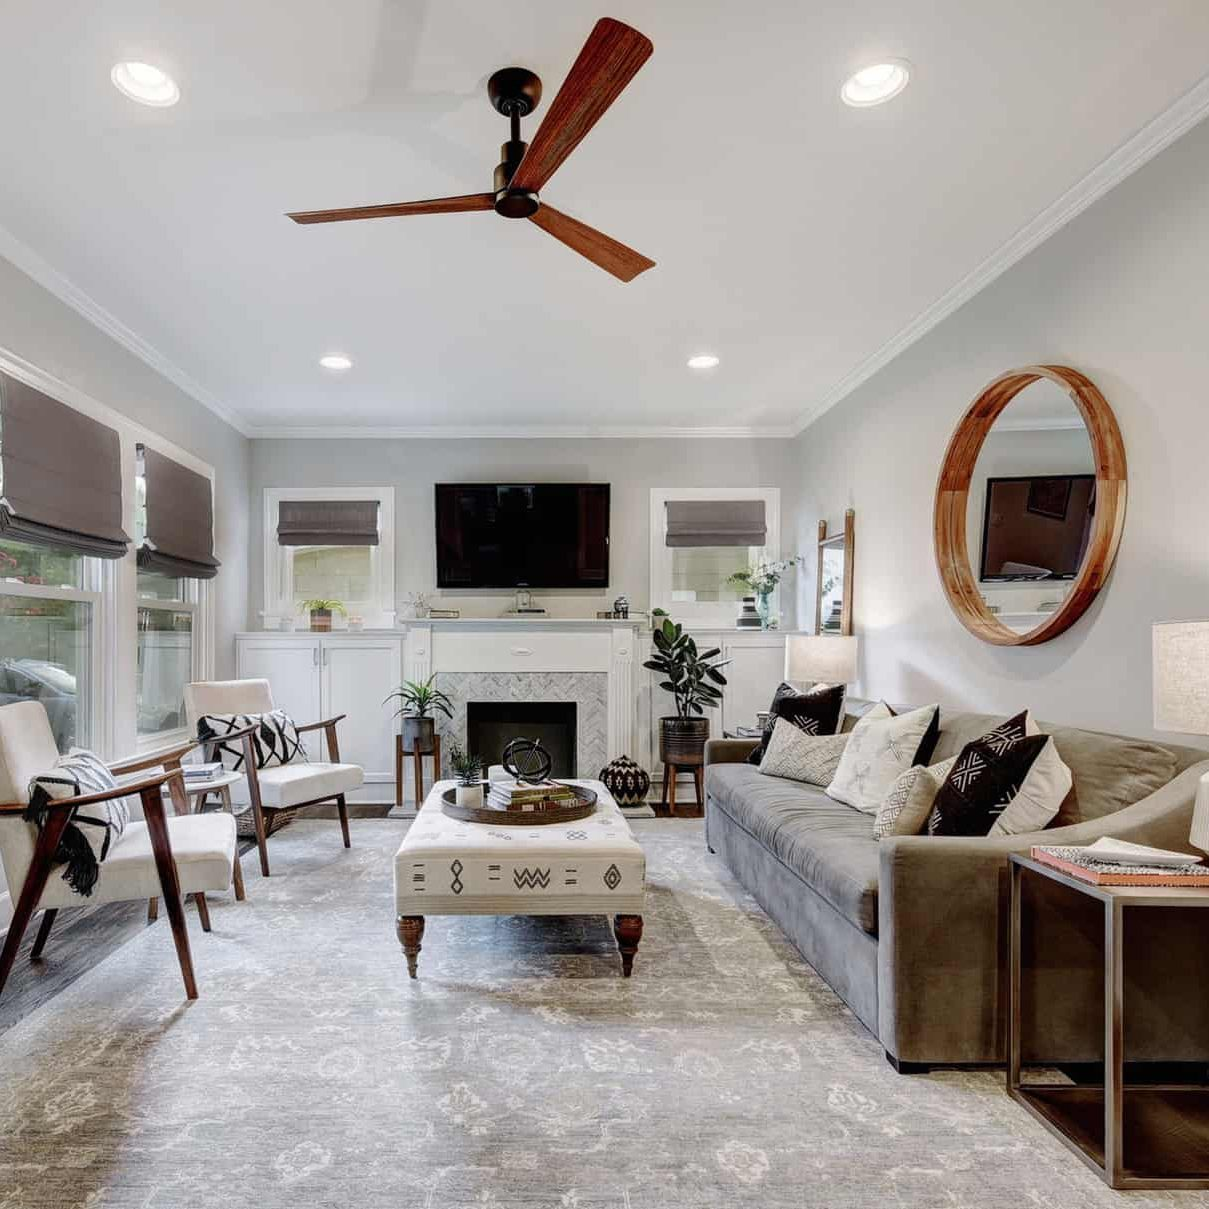 Etch Design Group - light colored living room with a hint of character.